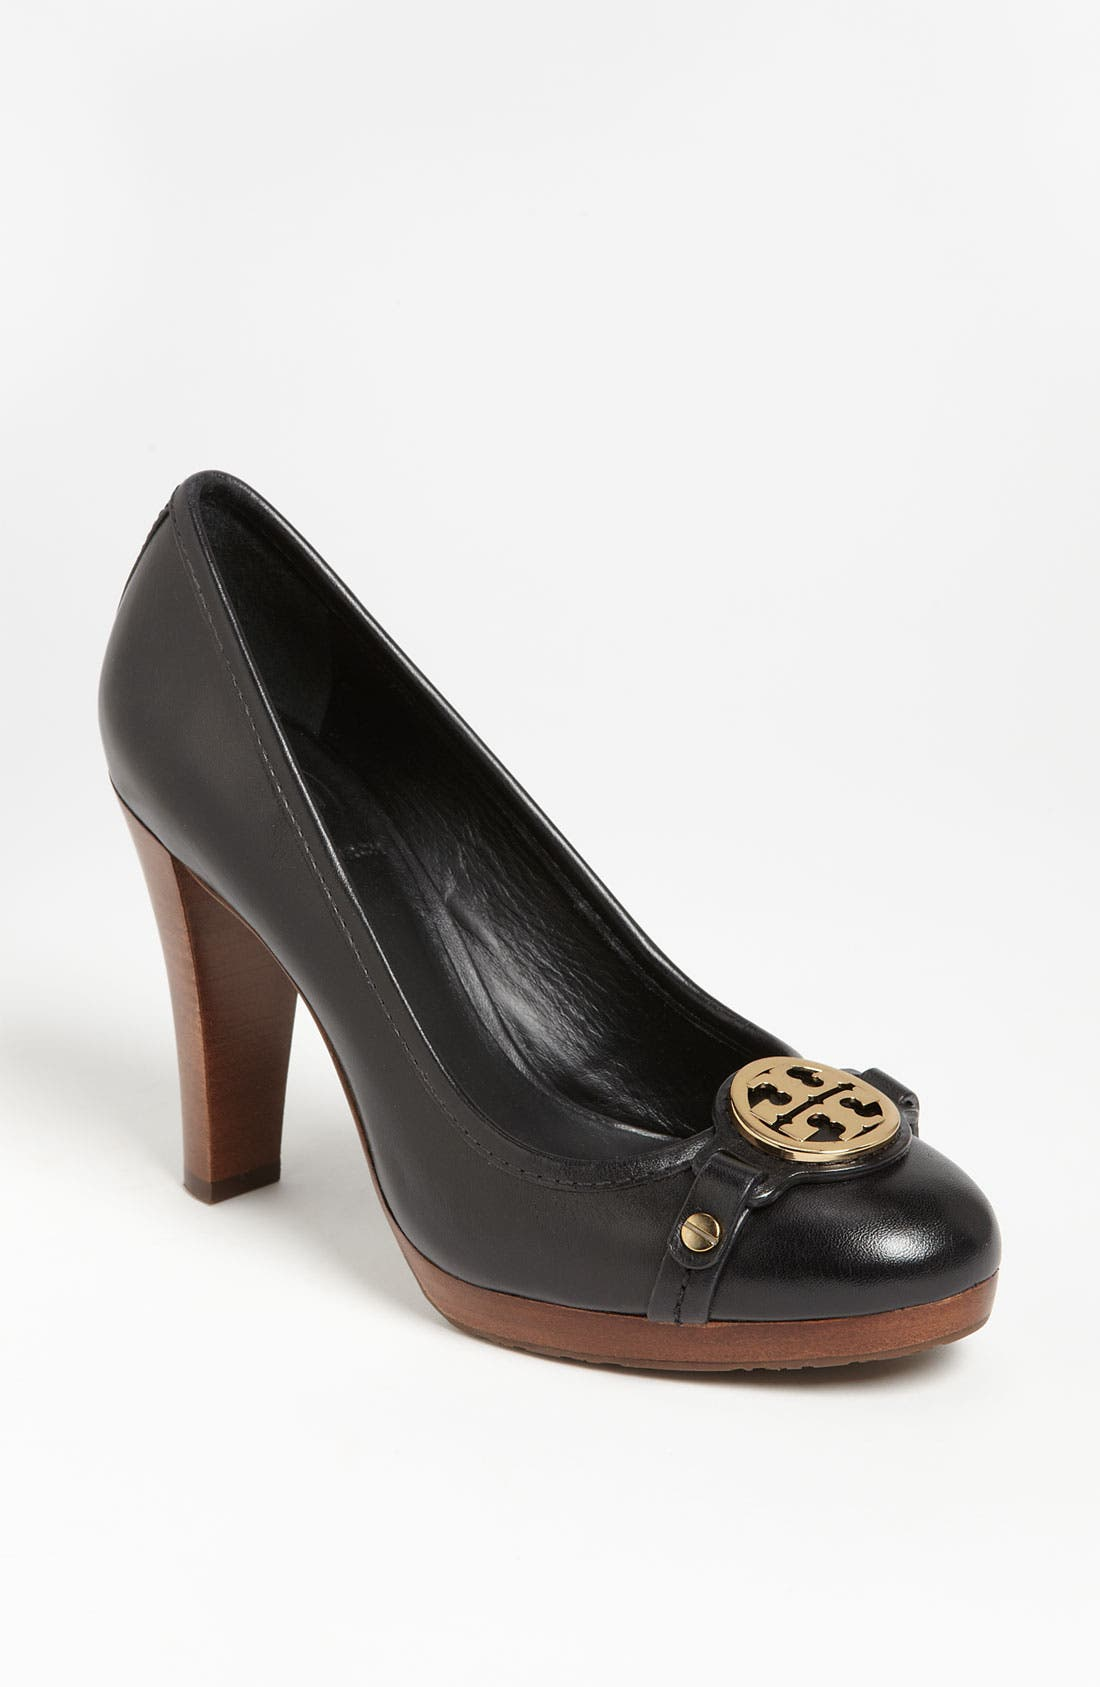 Main Image - Tory Burch 'Calista' Pump